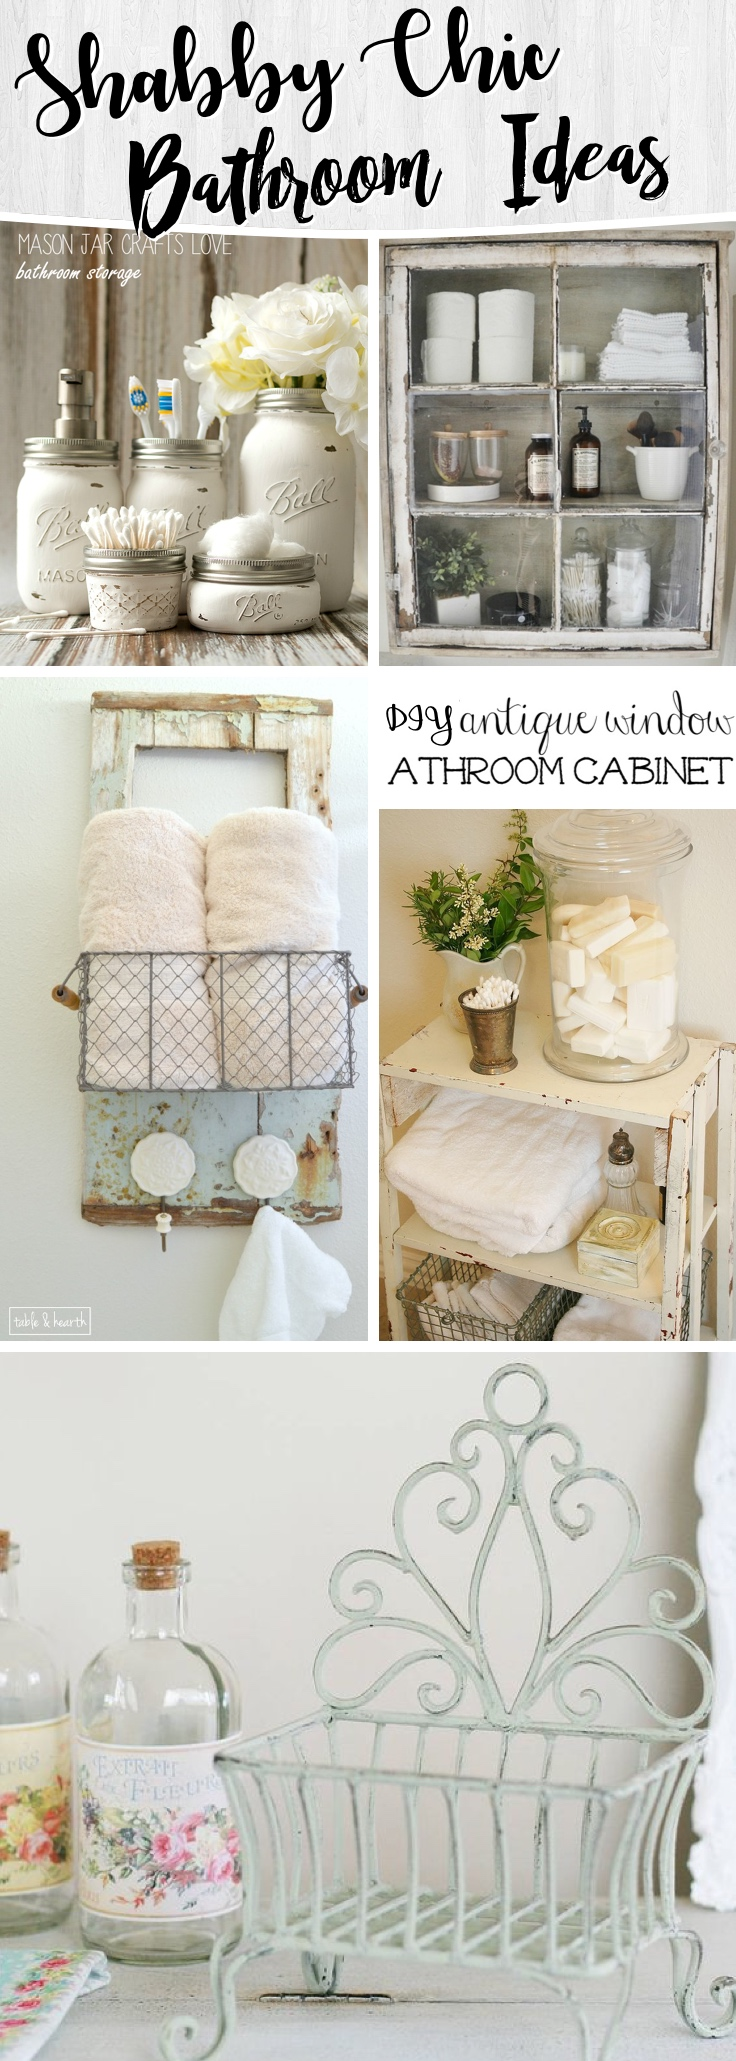 15 Shabby Chic Bathroom Ideas Transforming Your Space From Simple To Classic Cute Diy Projects